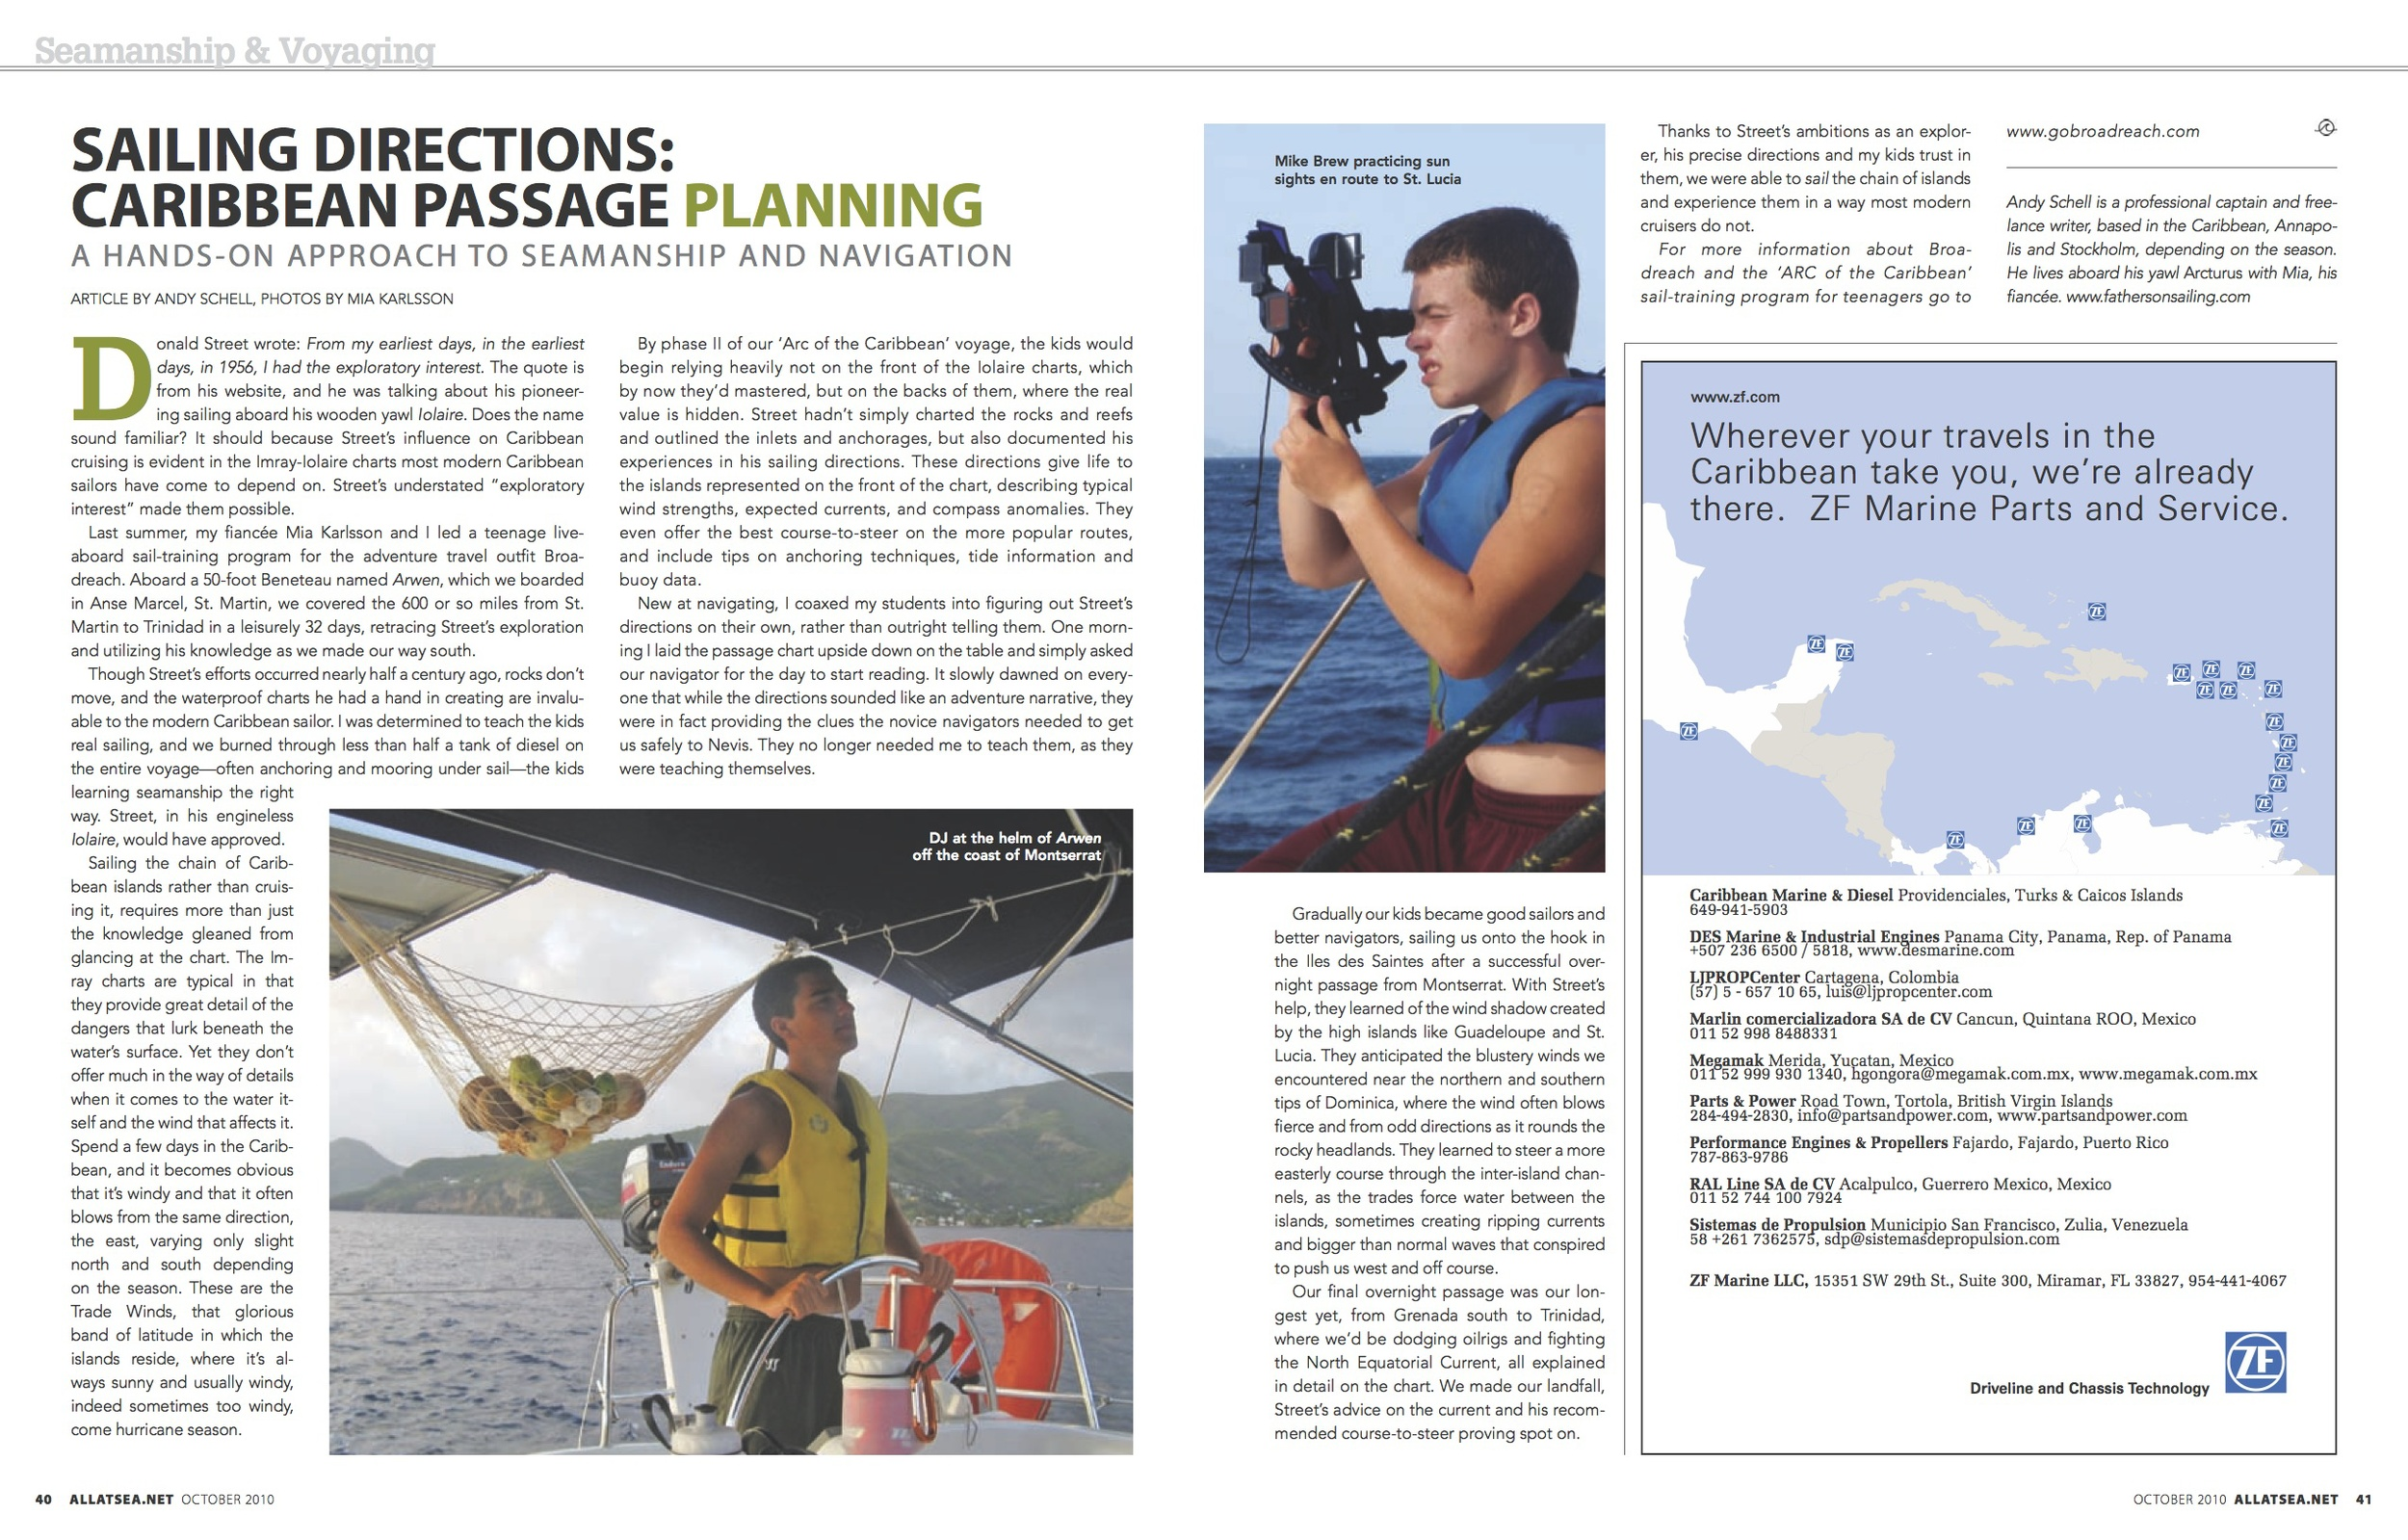 October 2010, Sailing Directions: Caribbean Passage Planning